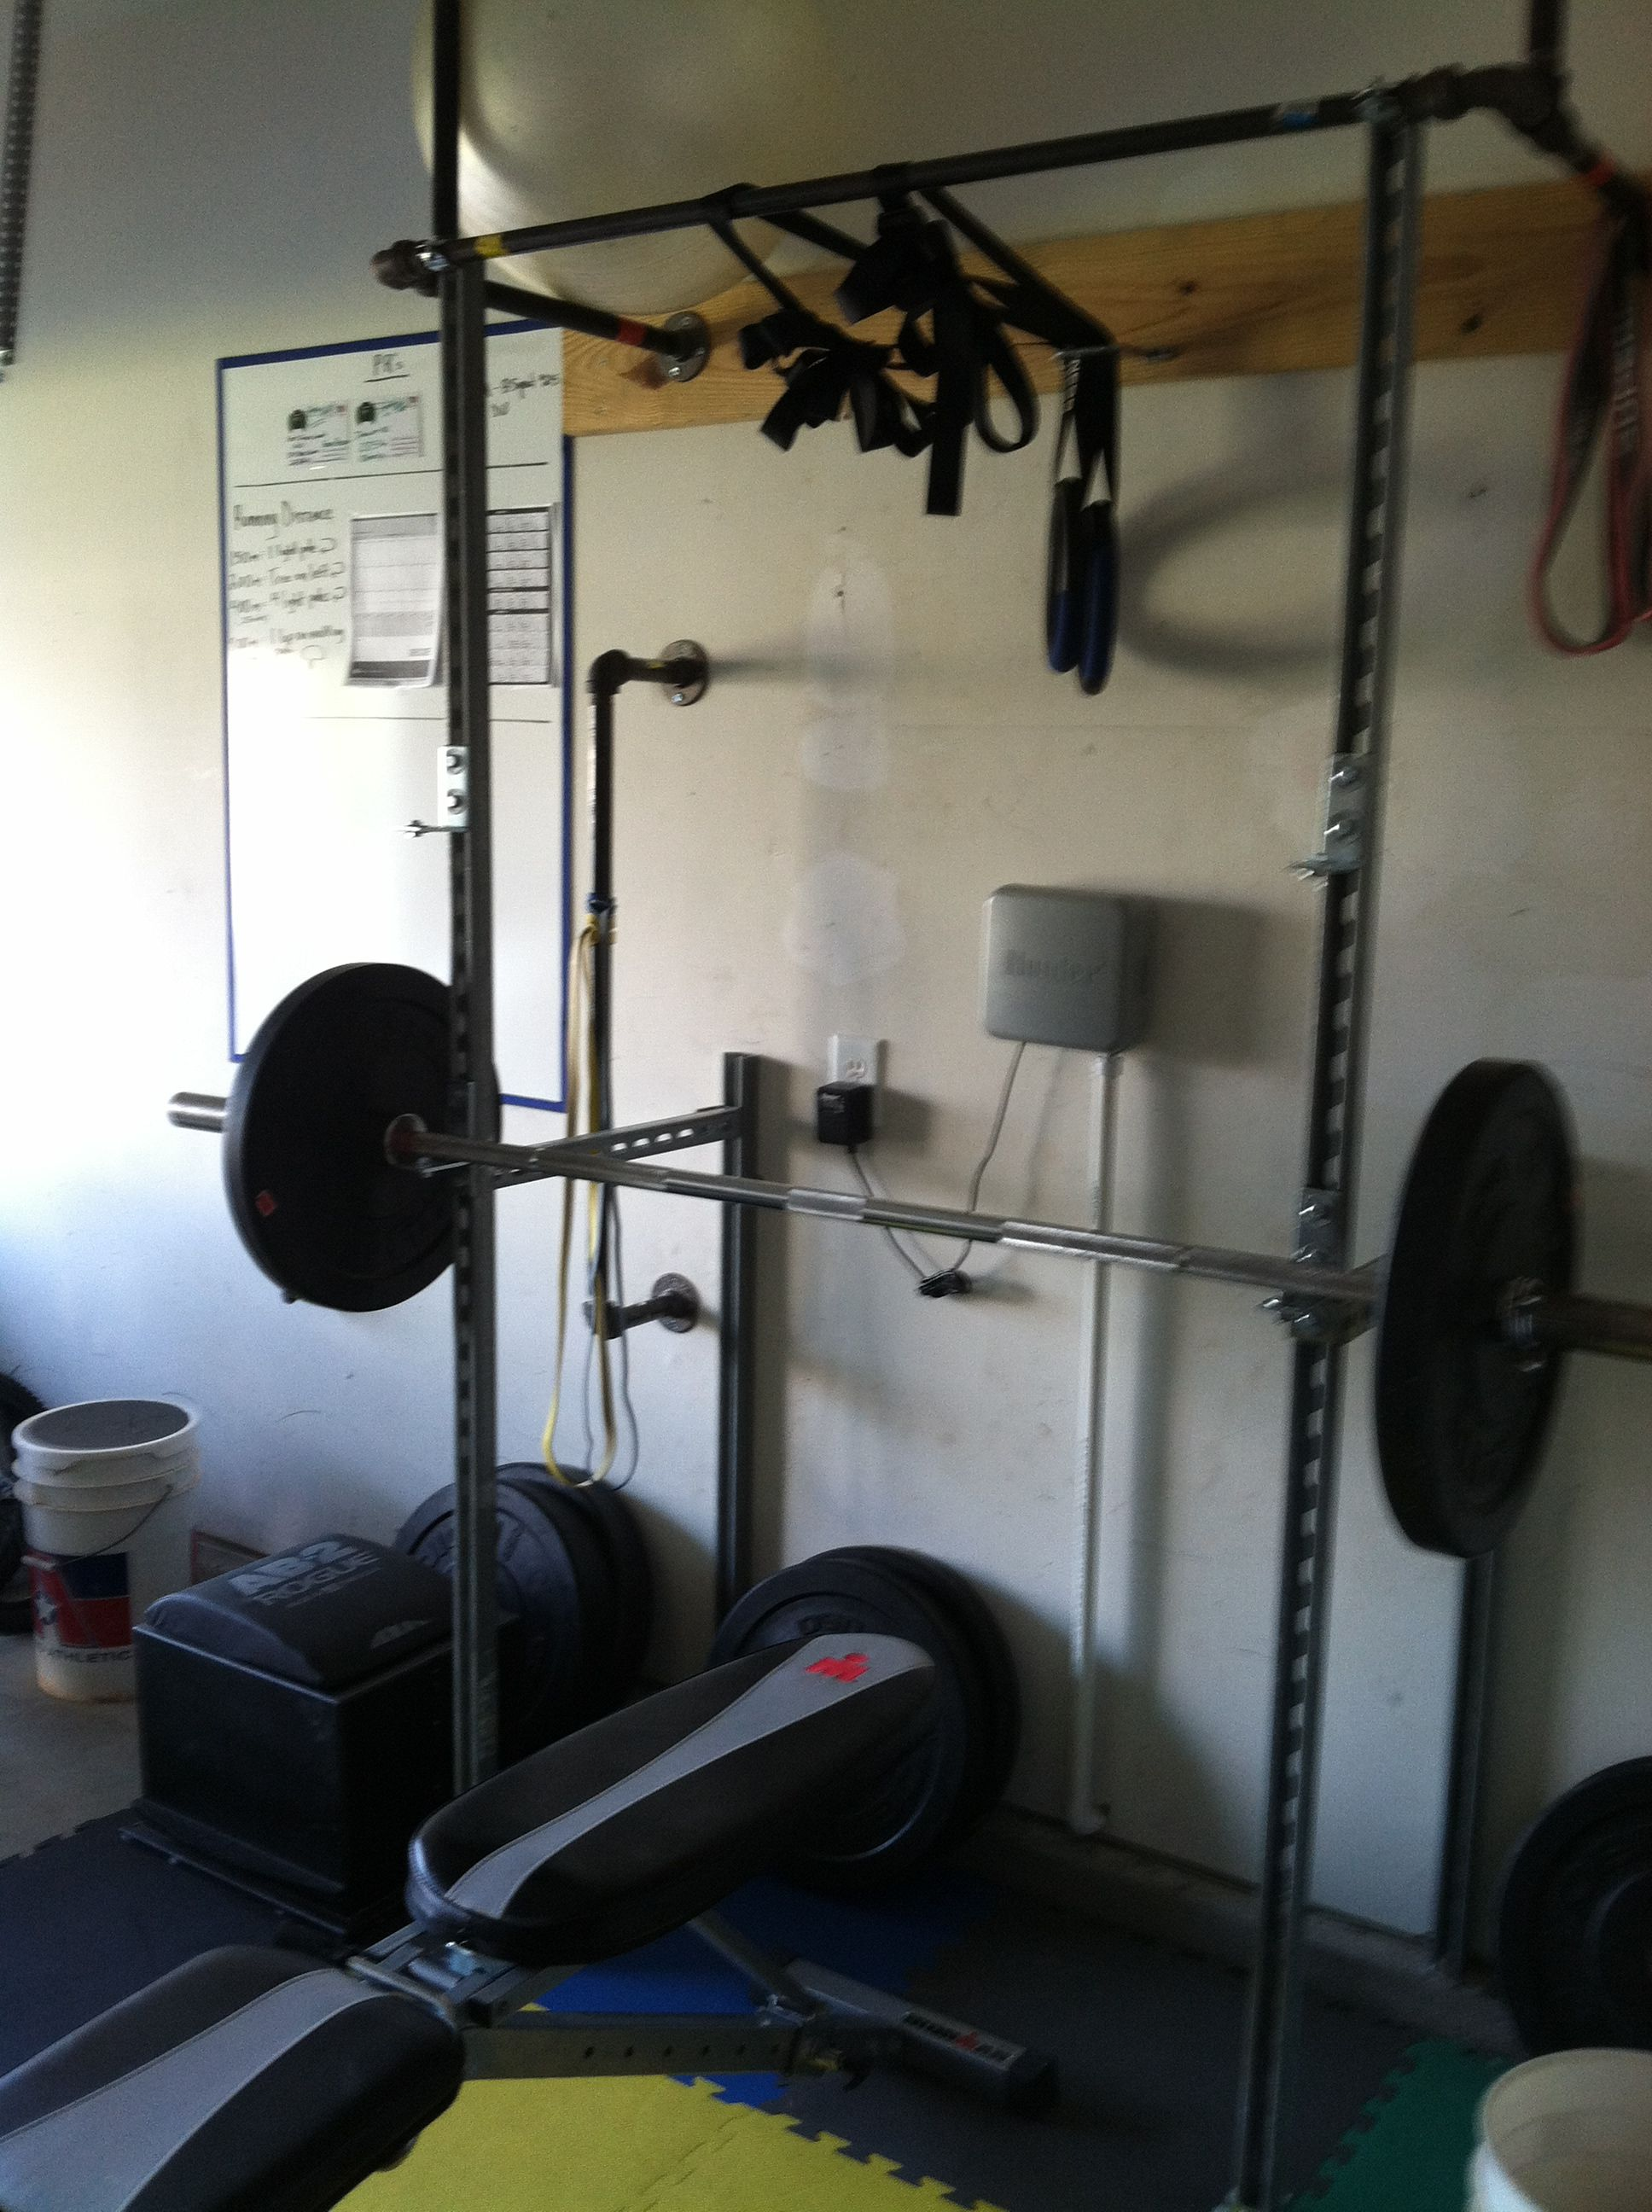 Homemade unistrut bench and squat rack w pullup bar unistrut